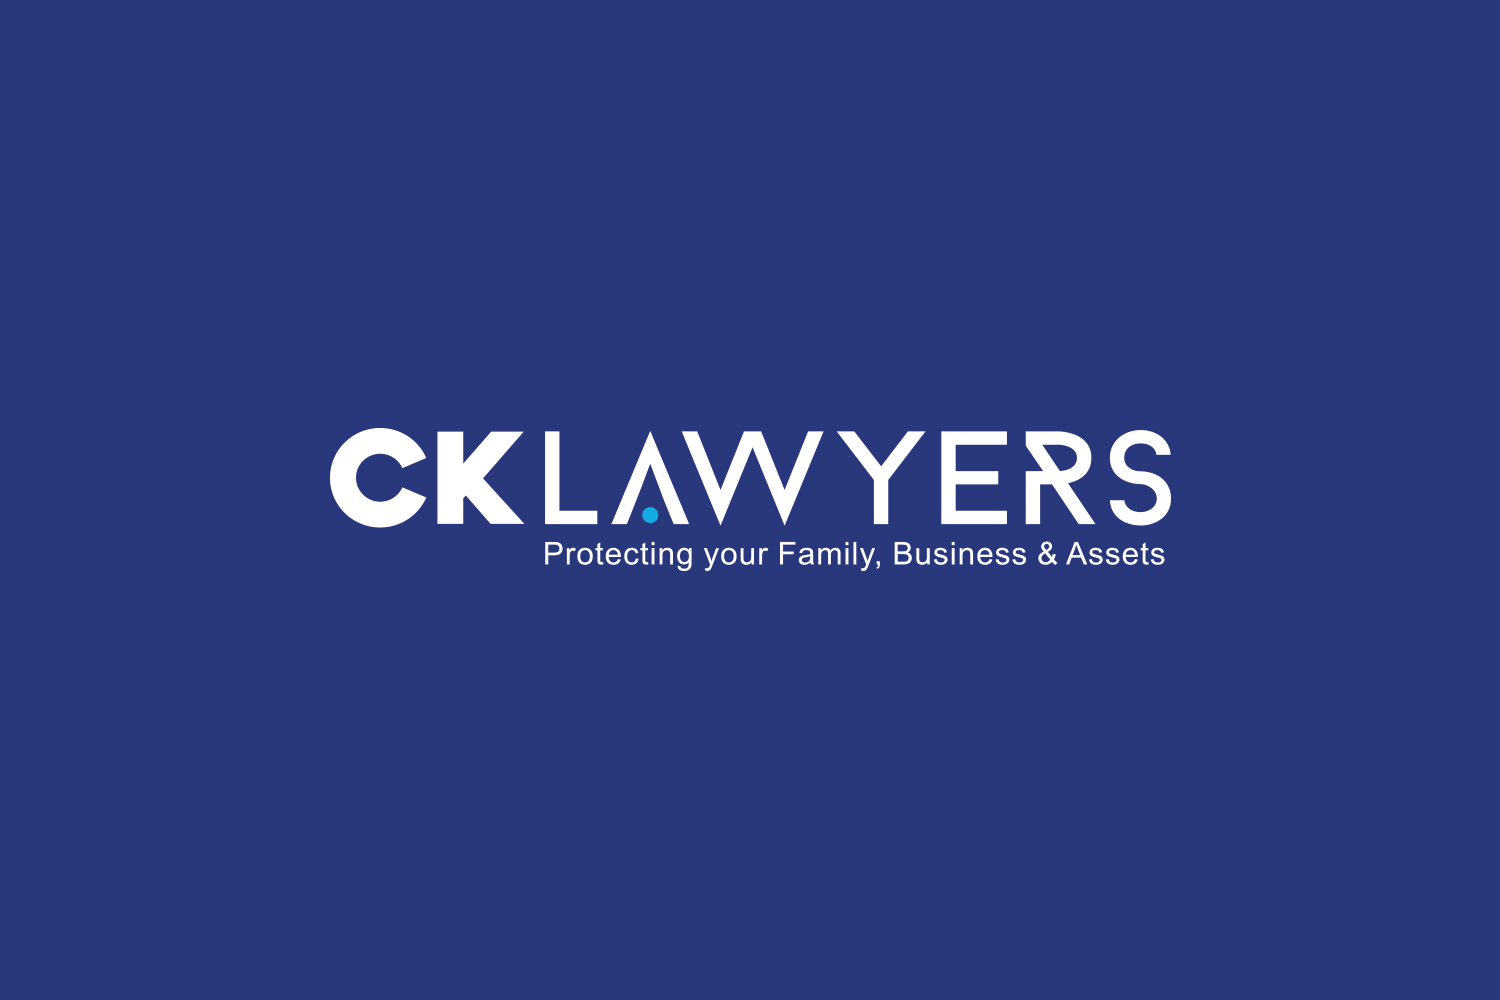 logo-design-for-Lawyers1